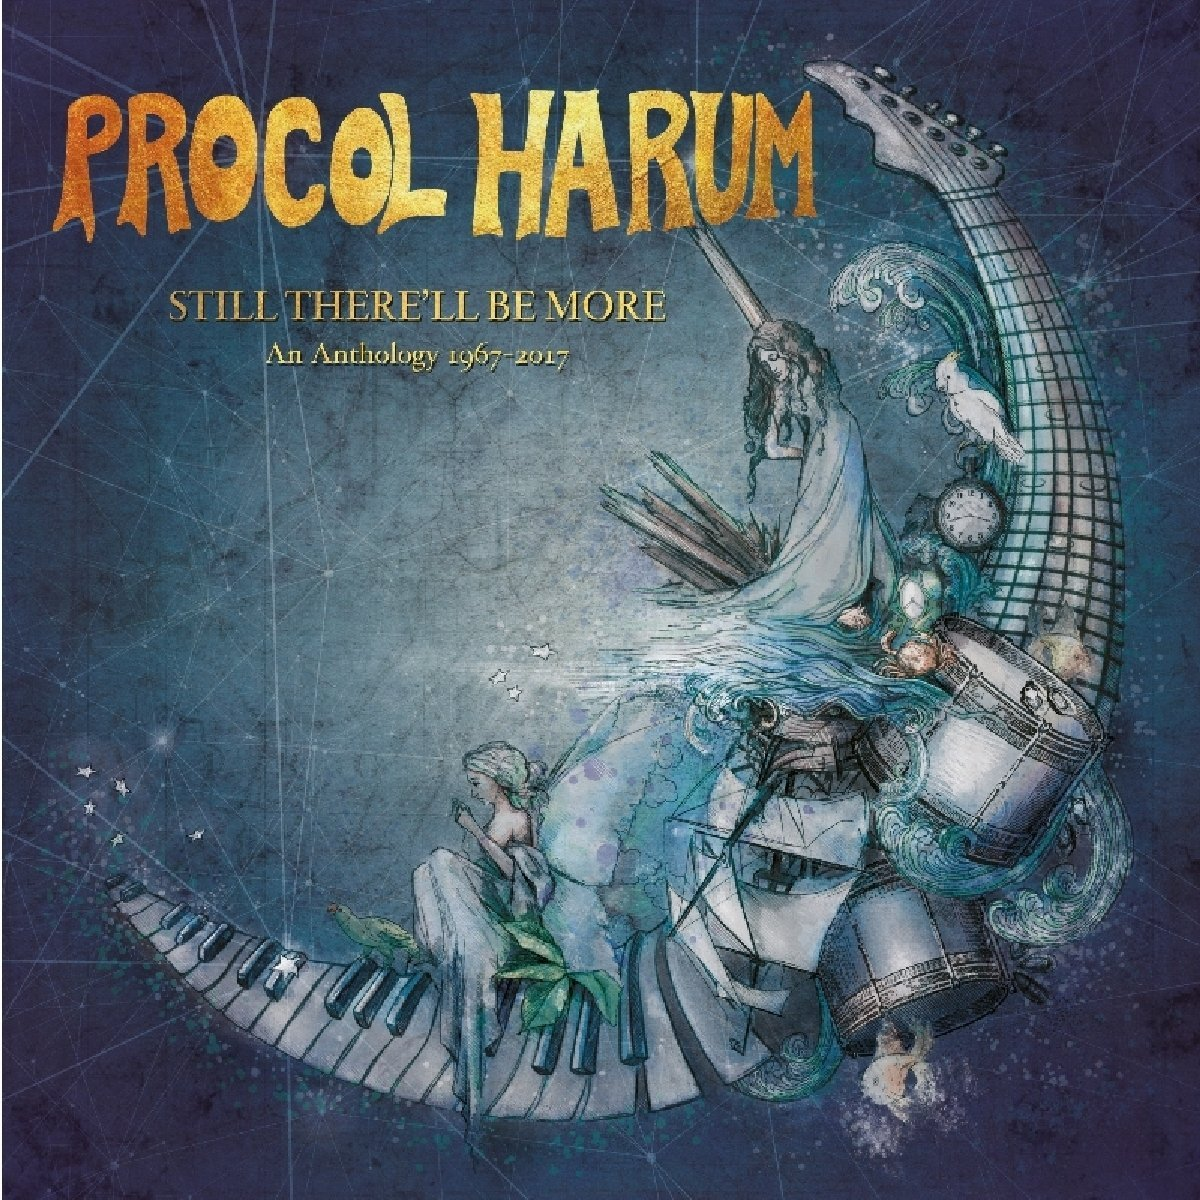 Still Therell Be More: An Anthology 1967-2017 - Procol Harum - Musik - ESOTERIC RECORDINGS - 5013929471009 - 23/3-2018